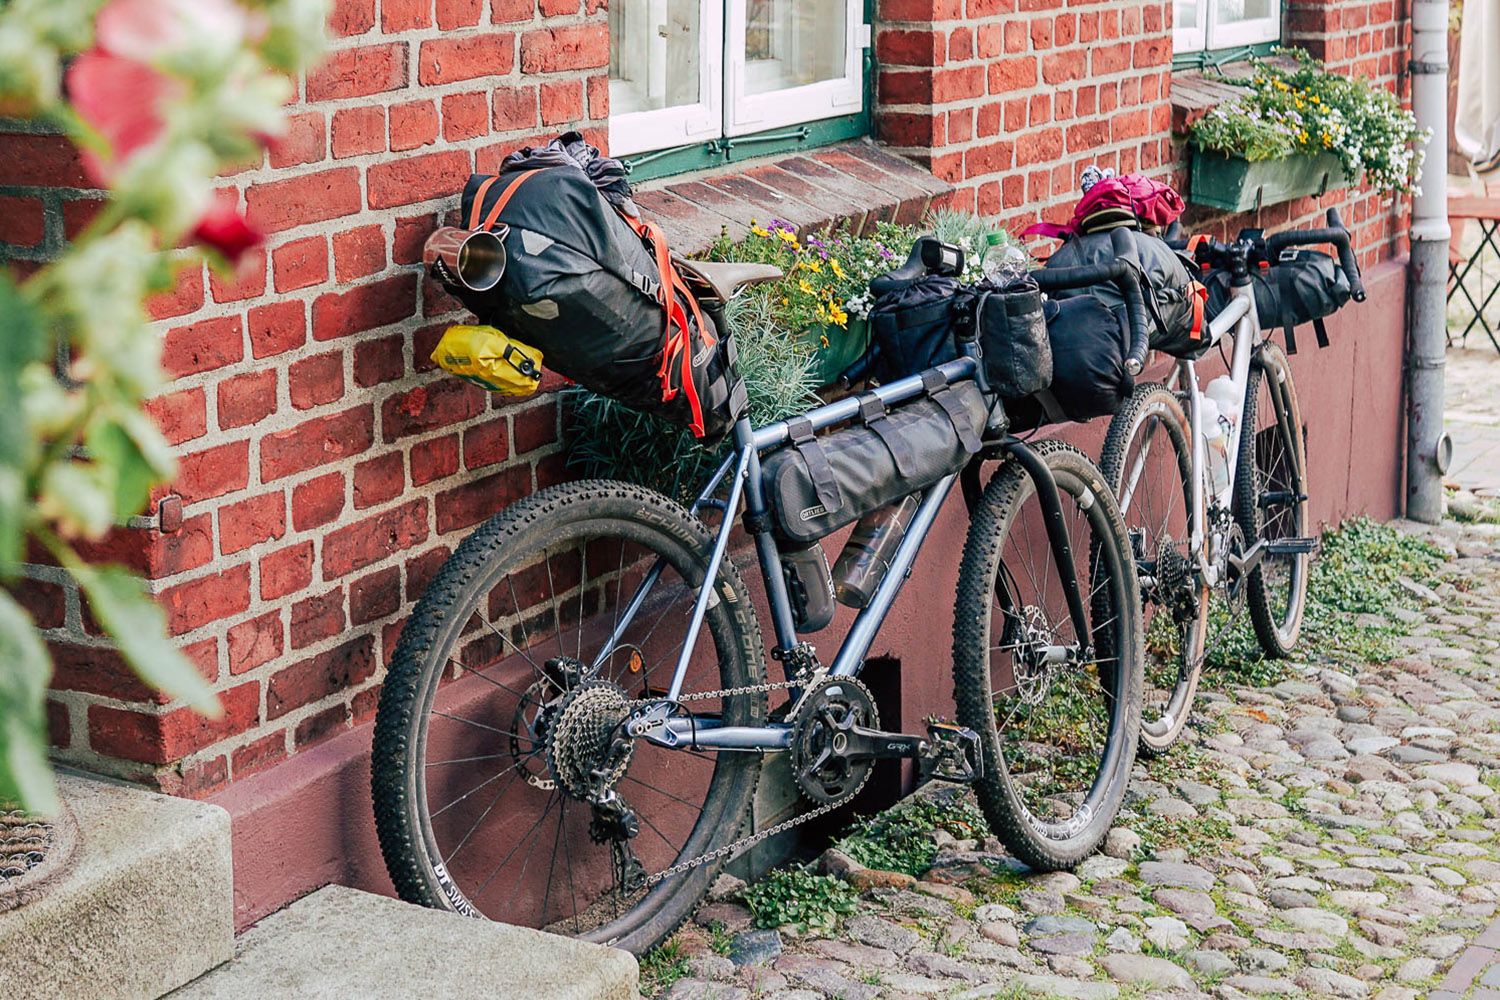 holy_gravel_2020_bikepacking_radelmaedchen-1500x1000_413